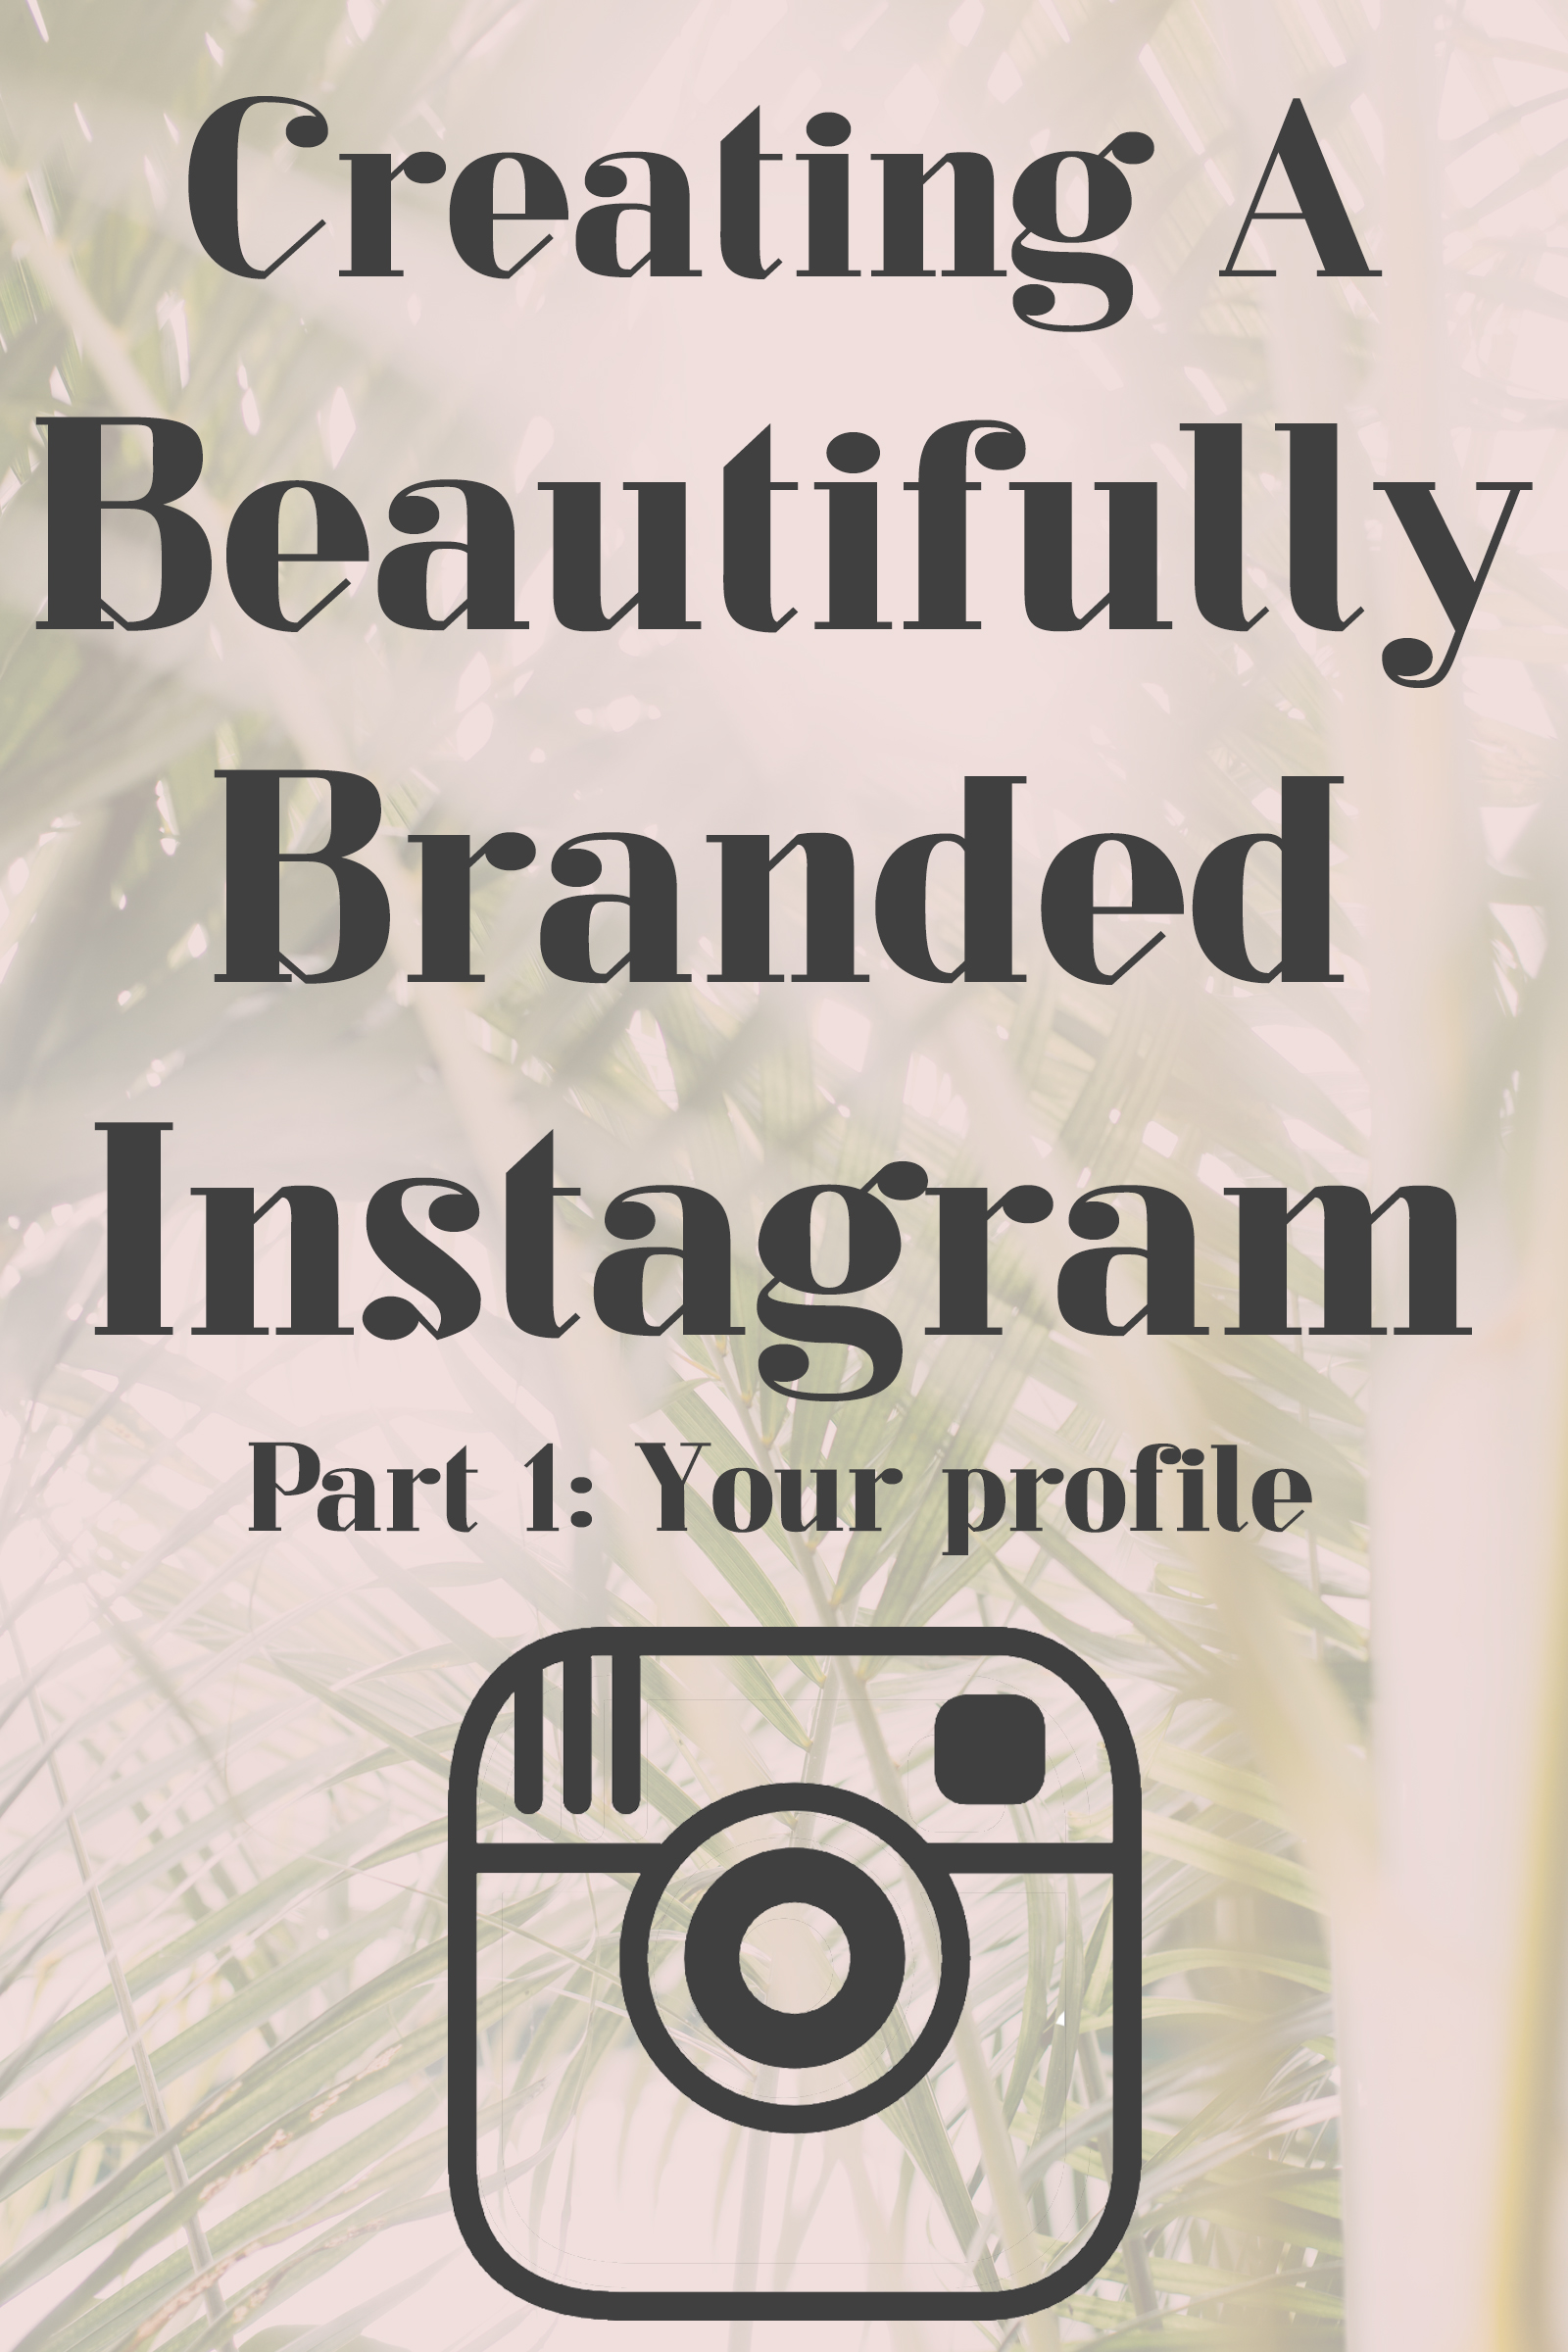 how to grow a business instagram account from 0